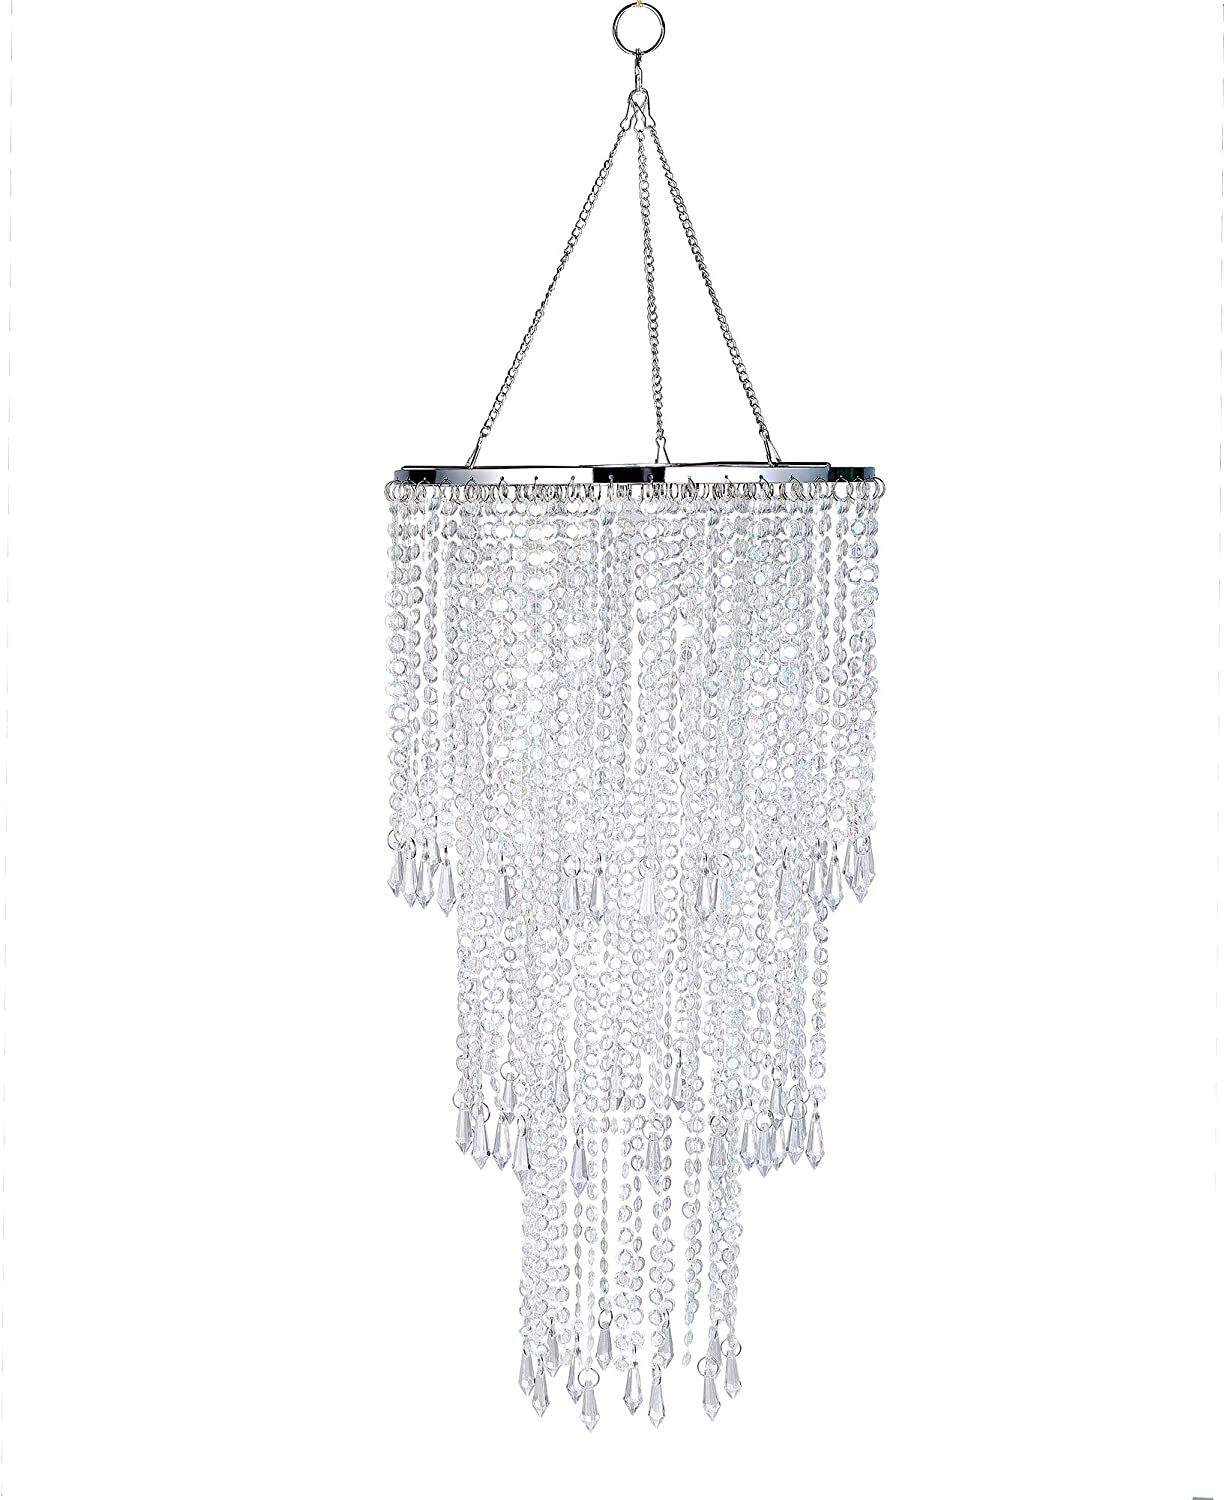 """Modern Chrome Beaded Hanging Chandelier (W10.25 x H20""""),3 Tiers Beads Pendant Shade, Ceiling Chandelier Lampshade with Acrylic Jewel Droplets, Beaded Lampshade (Crystal Iridescent)"""